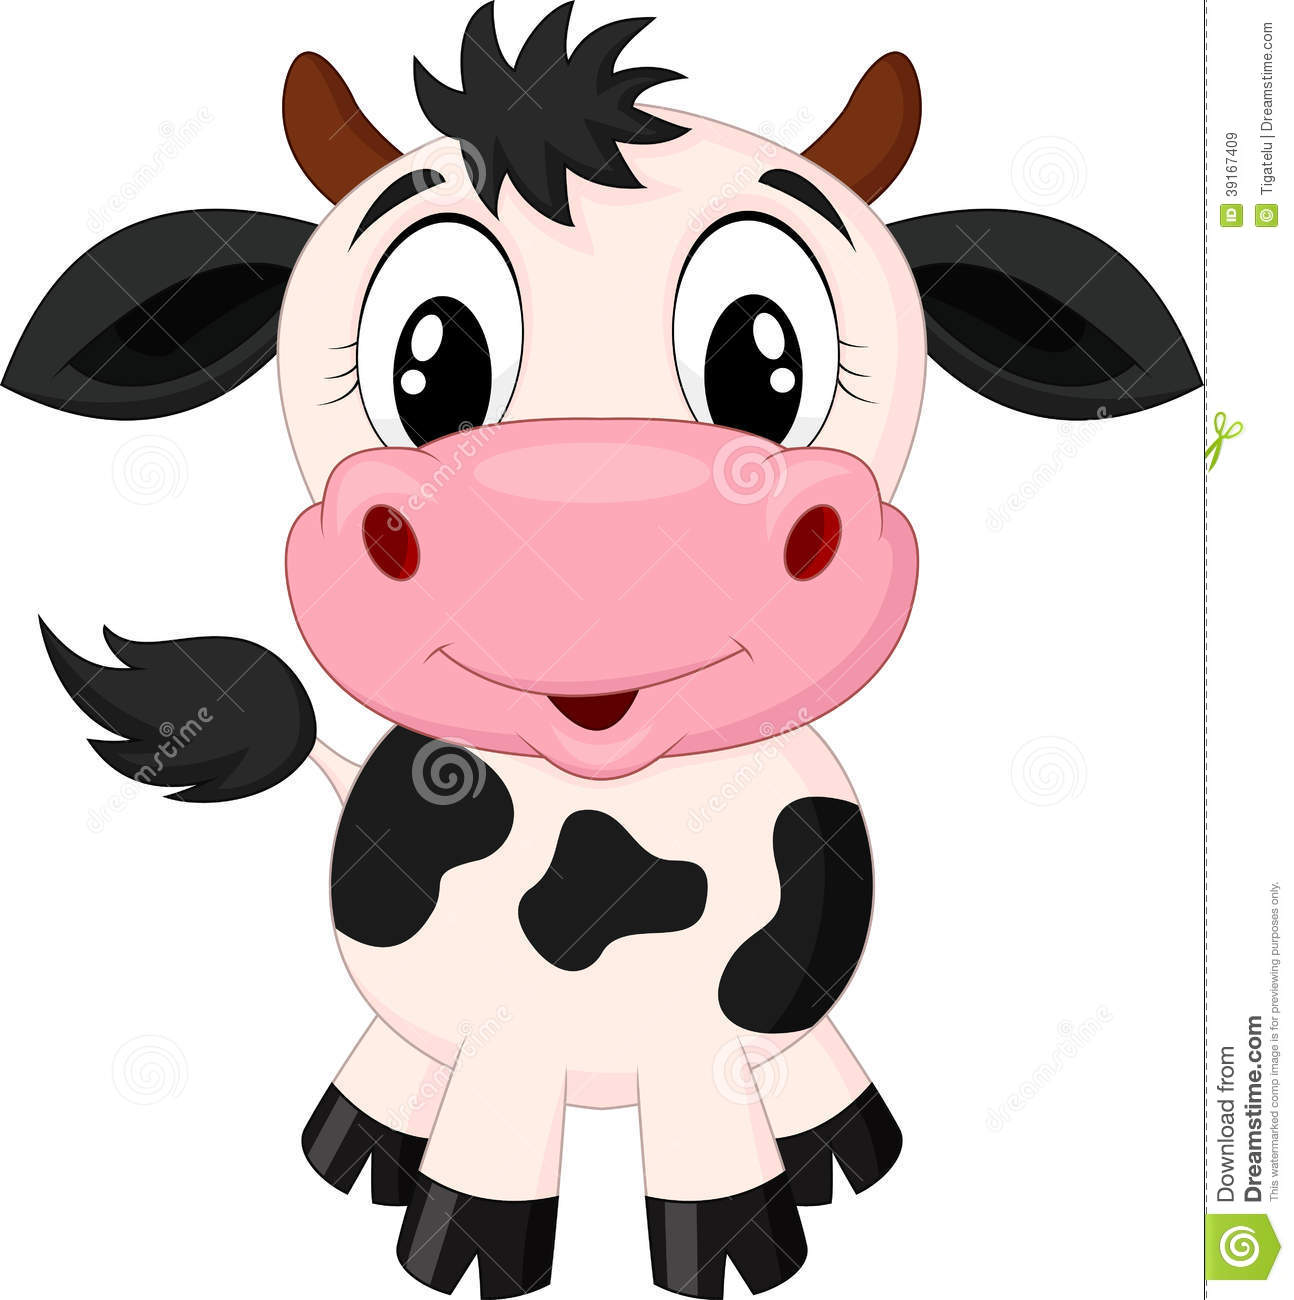 Cute cow cartoon stock vector. Illustration of dairy ...